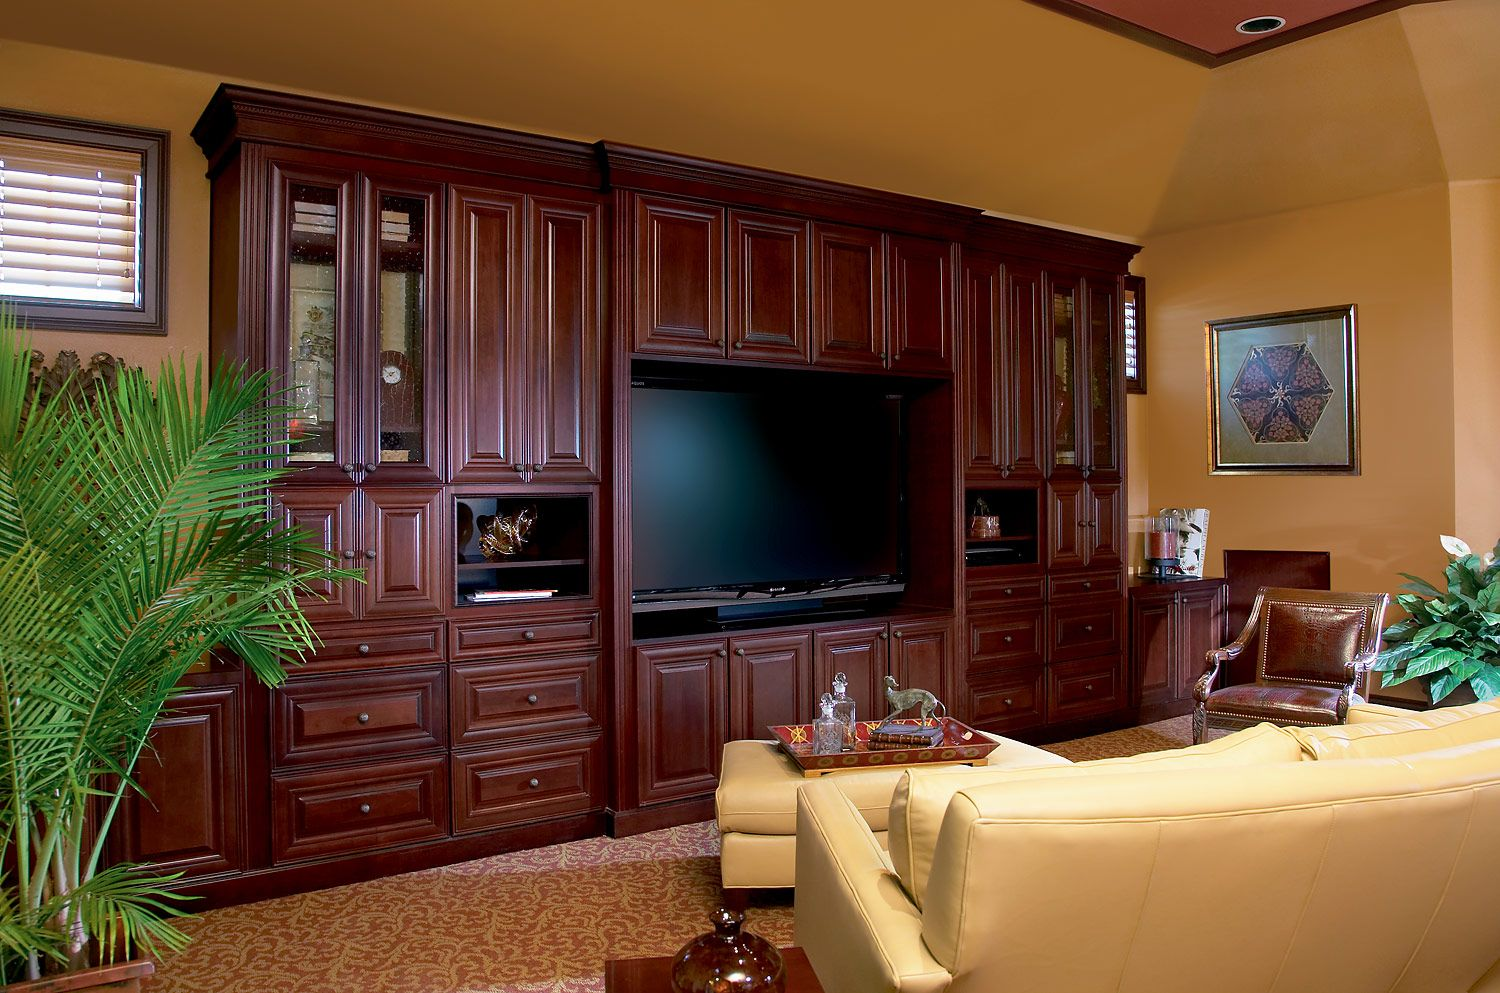 Sierra Vista Cabinets: Specs & Features | House rooms